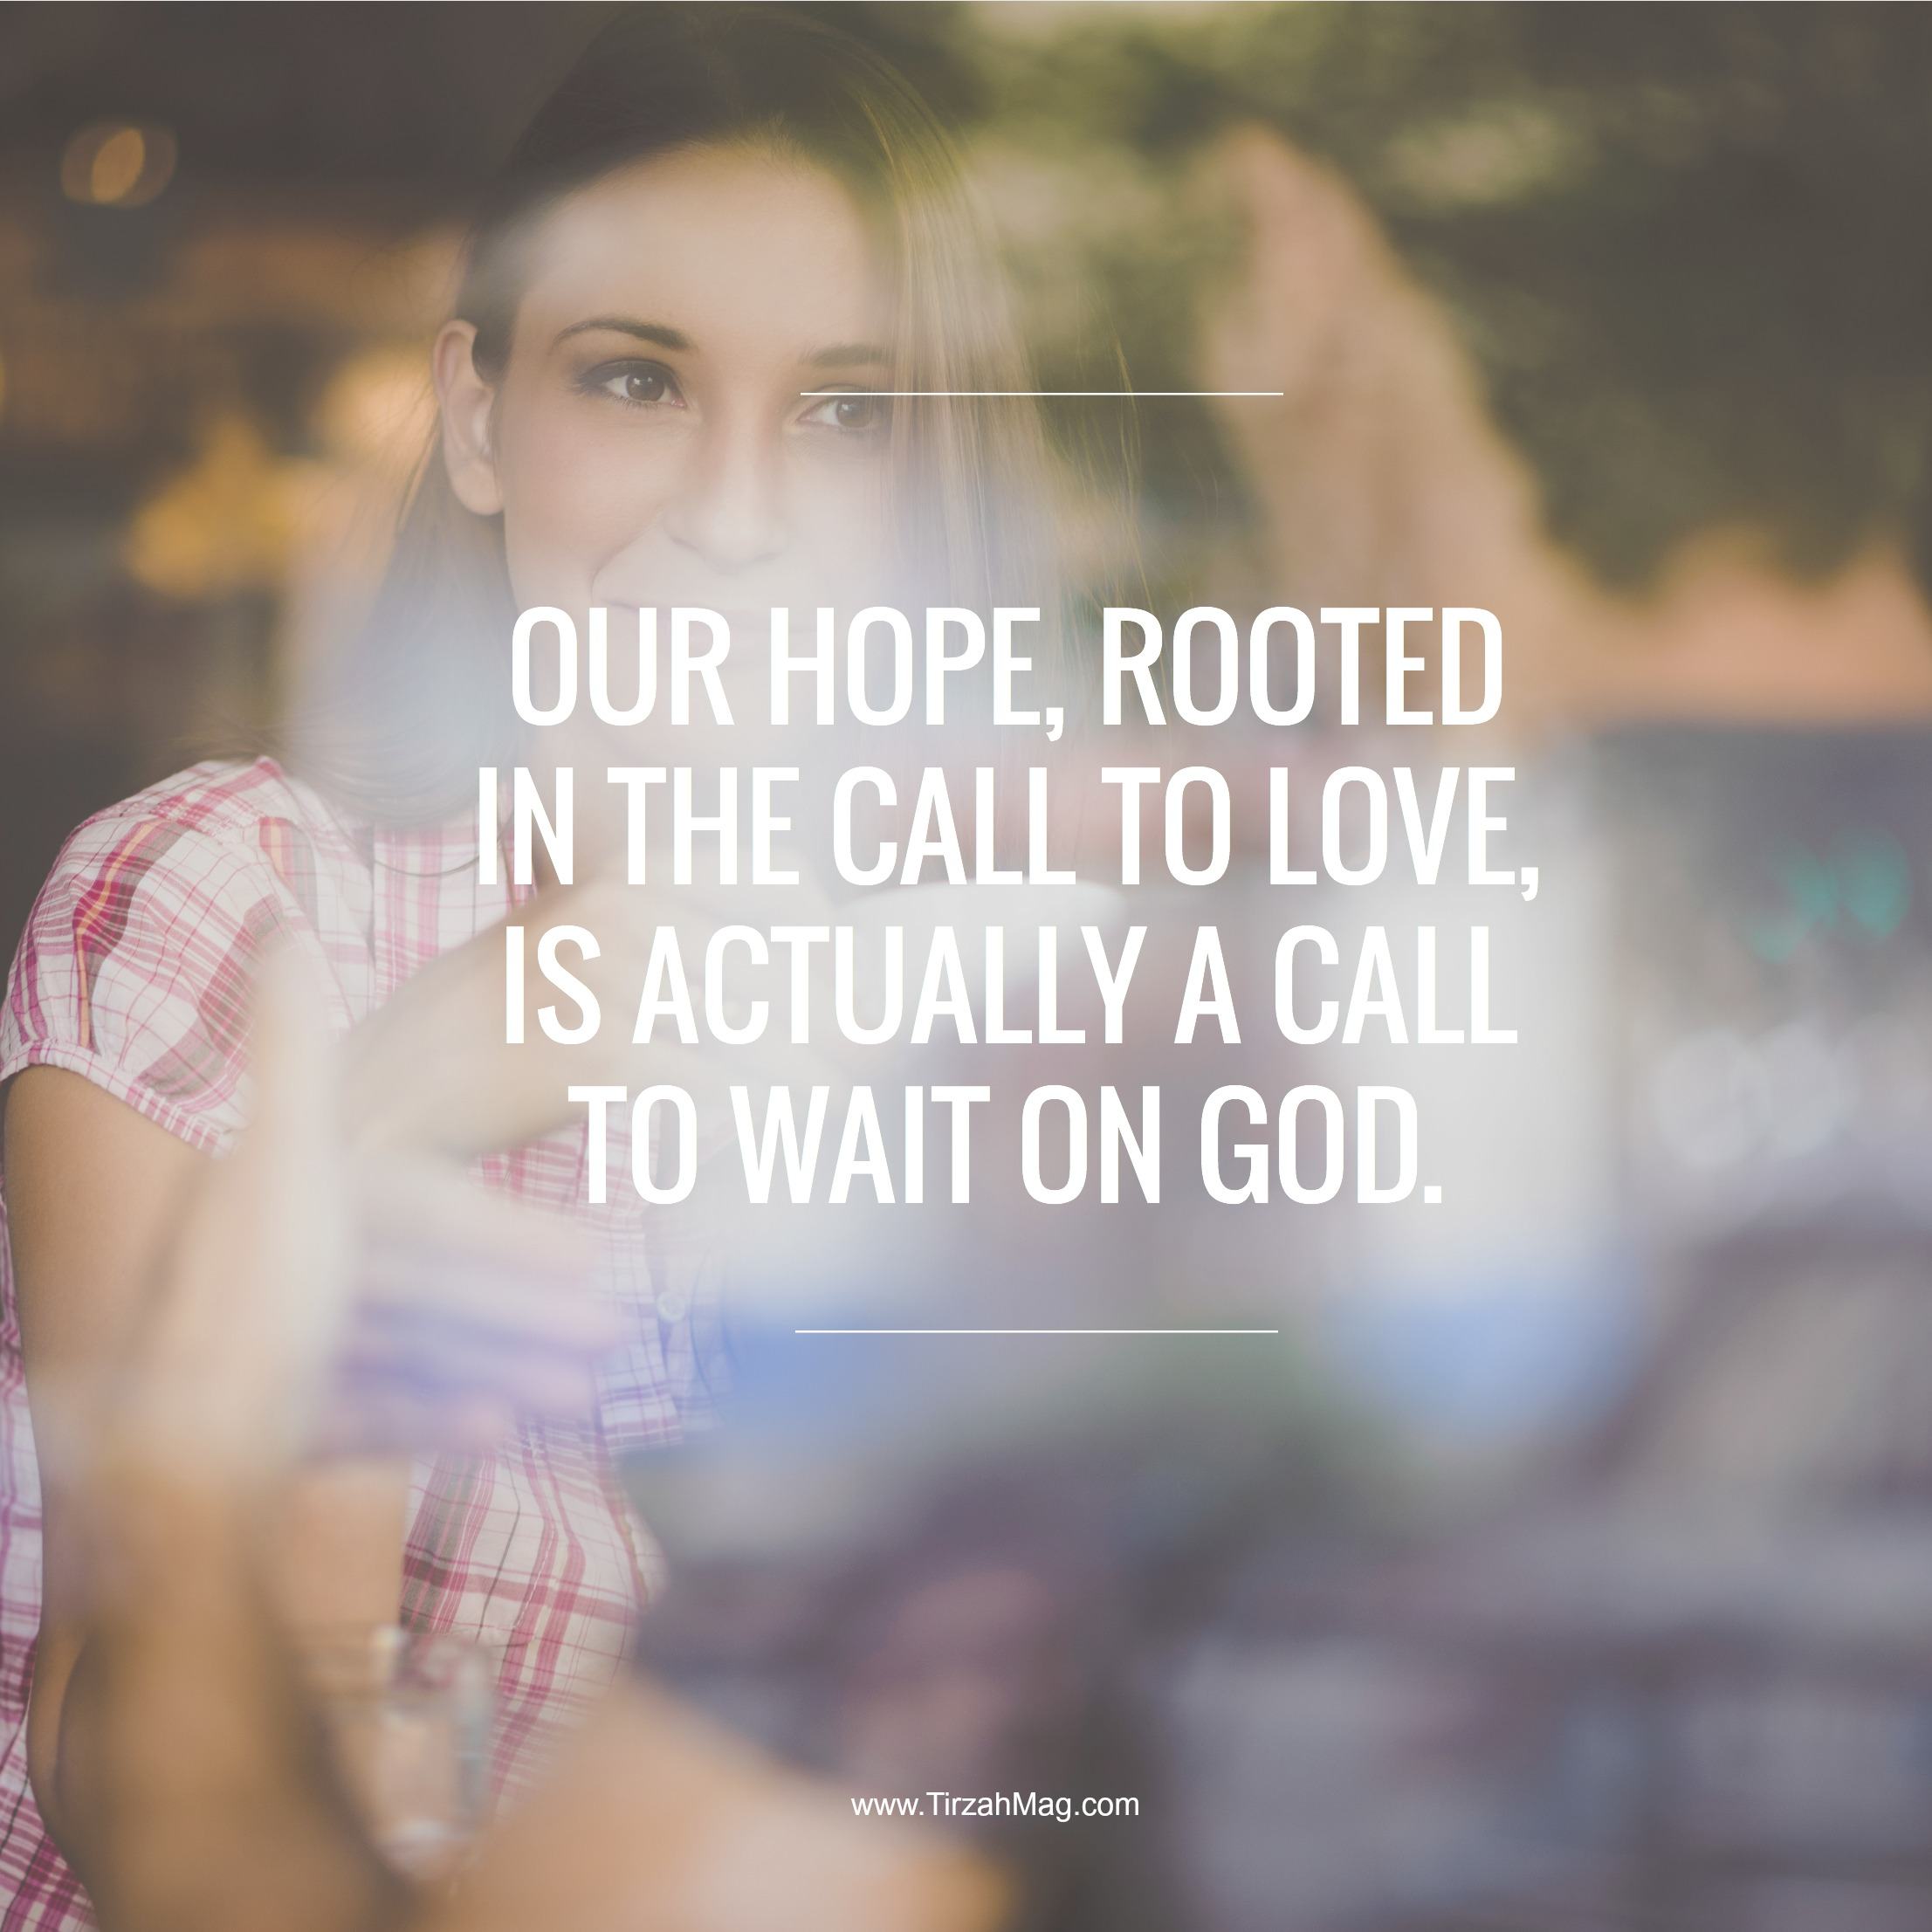 To wait for God is to hope in Him, and the longer we wait, the more we hope and are strengthened by the Holy Spirit